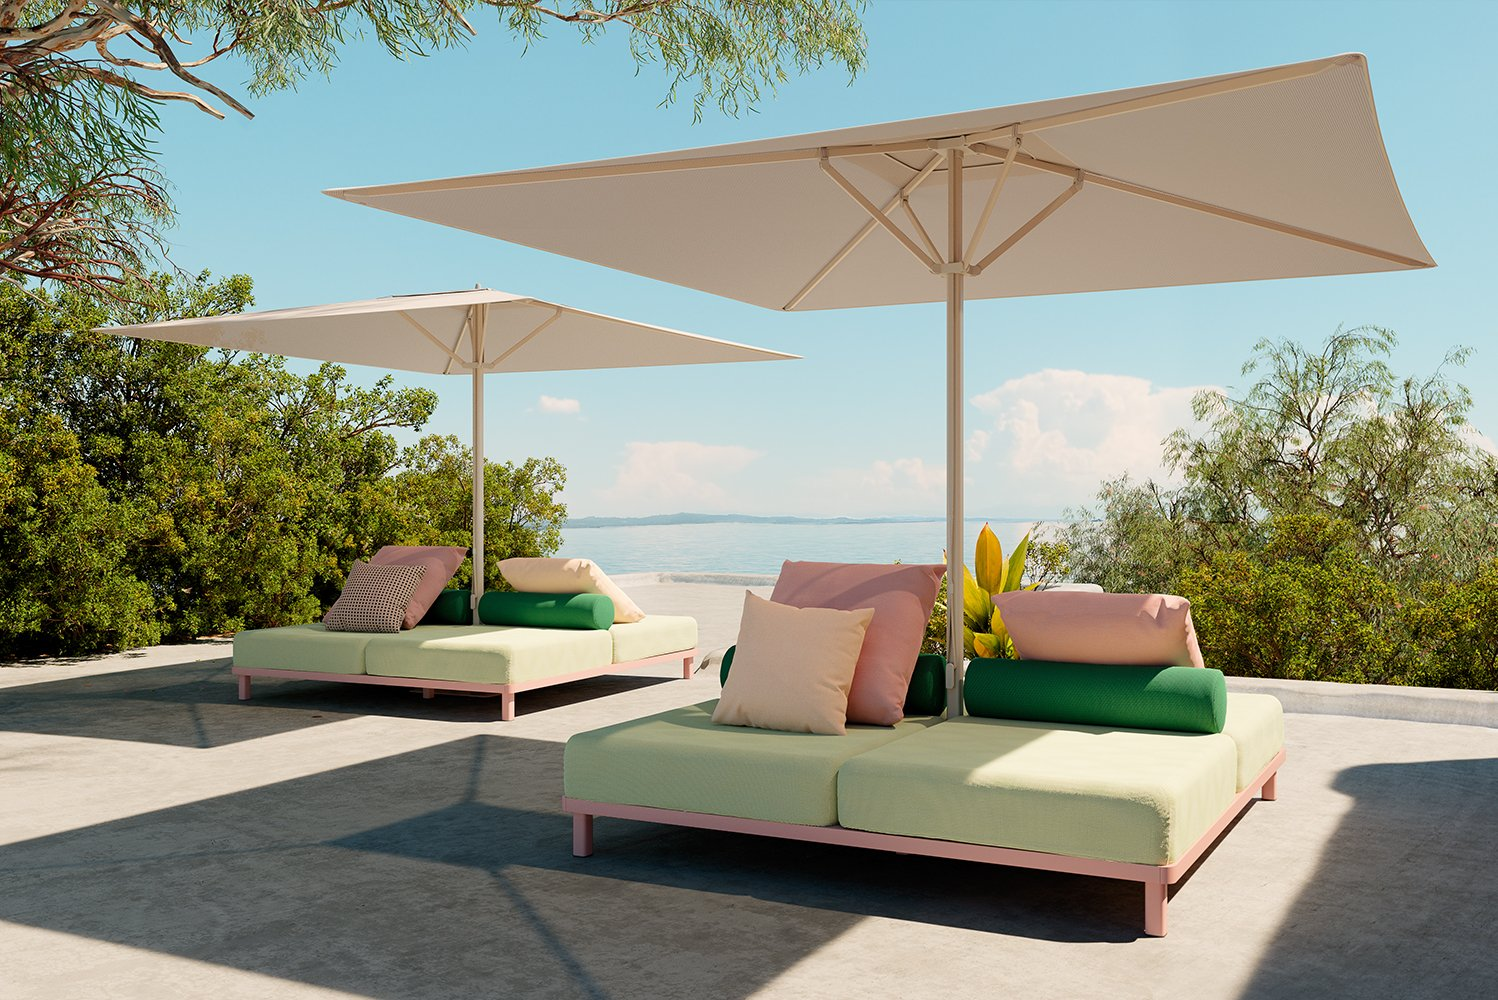 Konstantin Grcic relaunched the Meteo parasols.